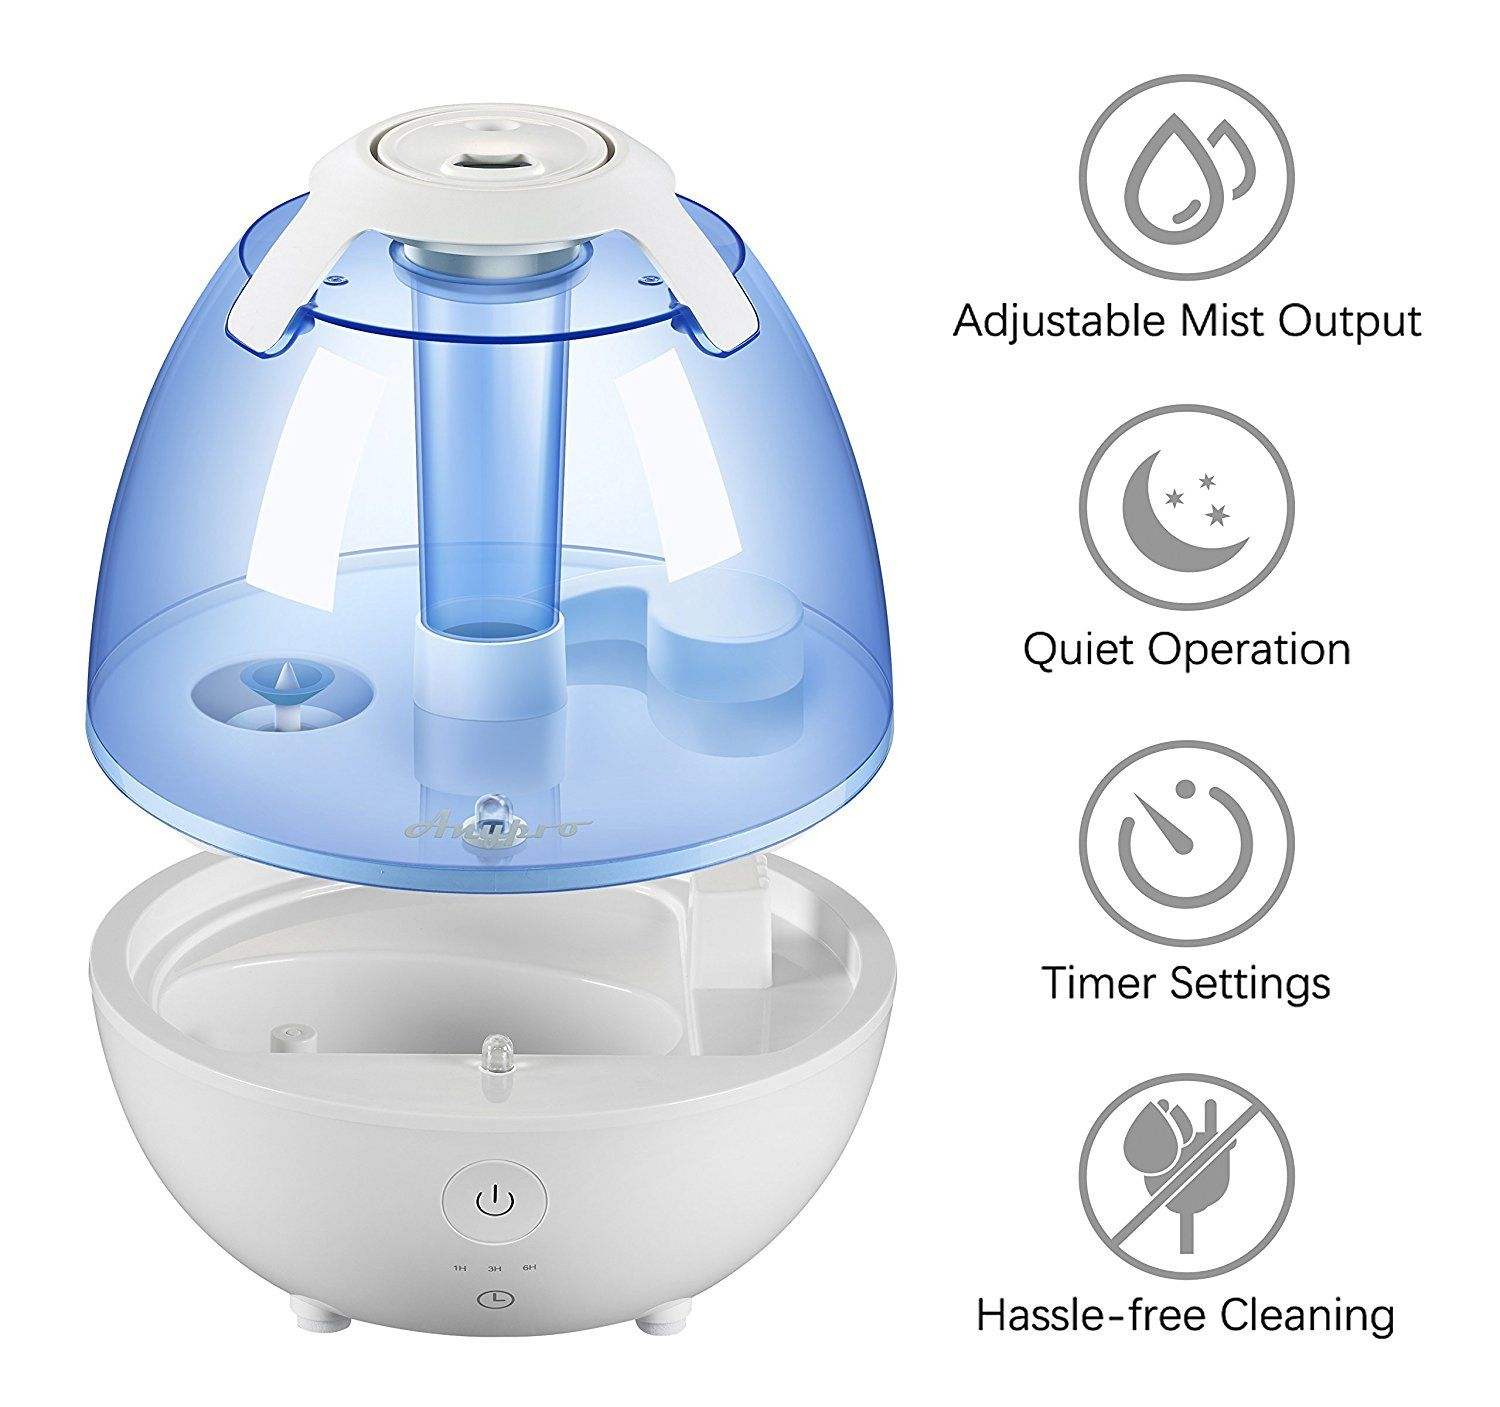 What Is The Best Humidifier To Buy